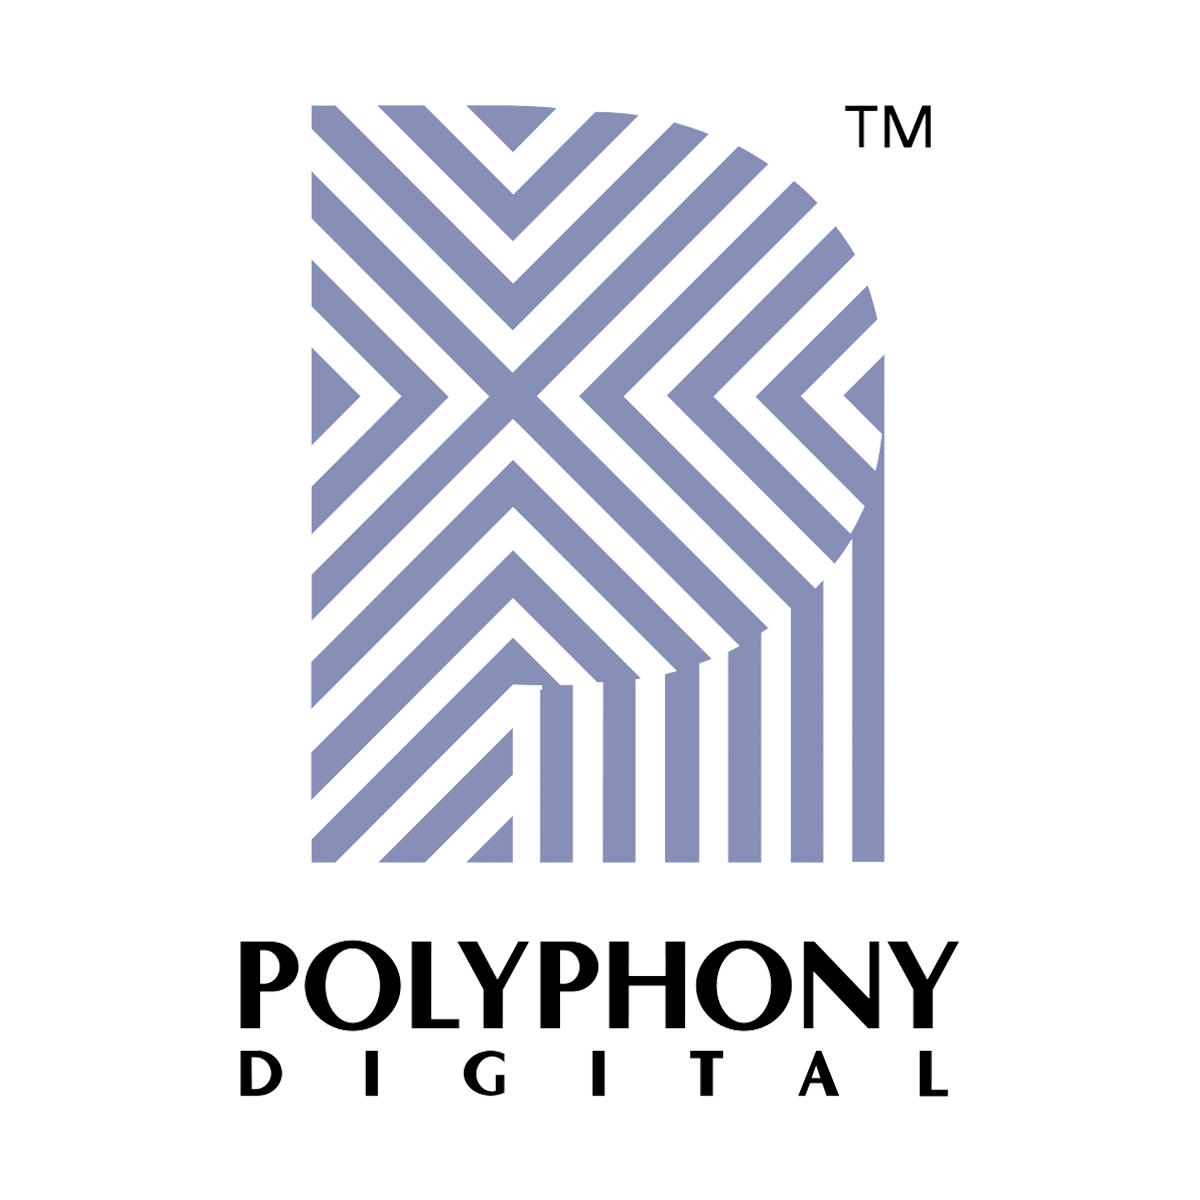 Polyphony Digital